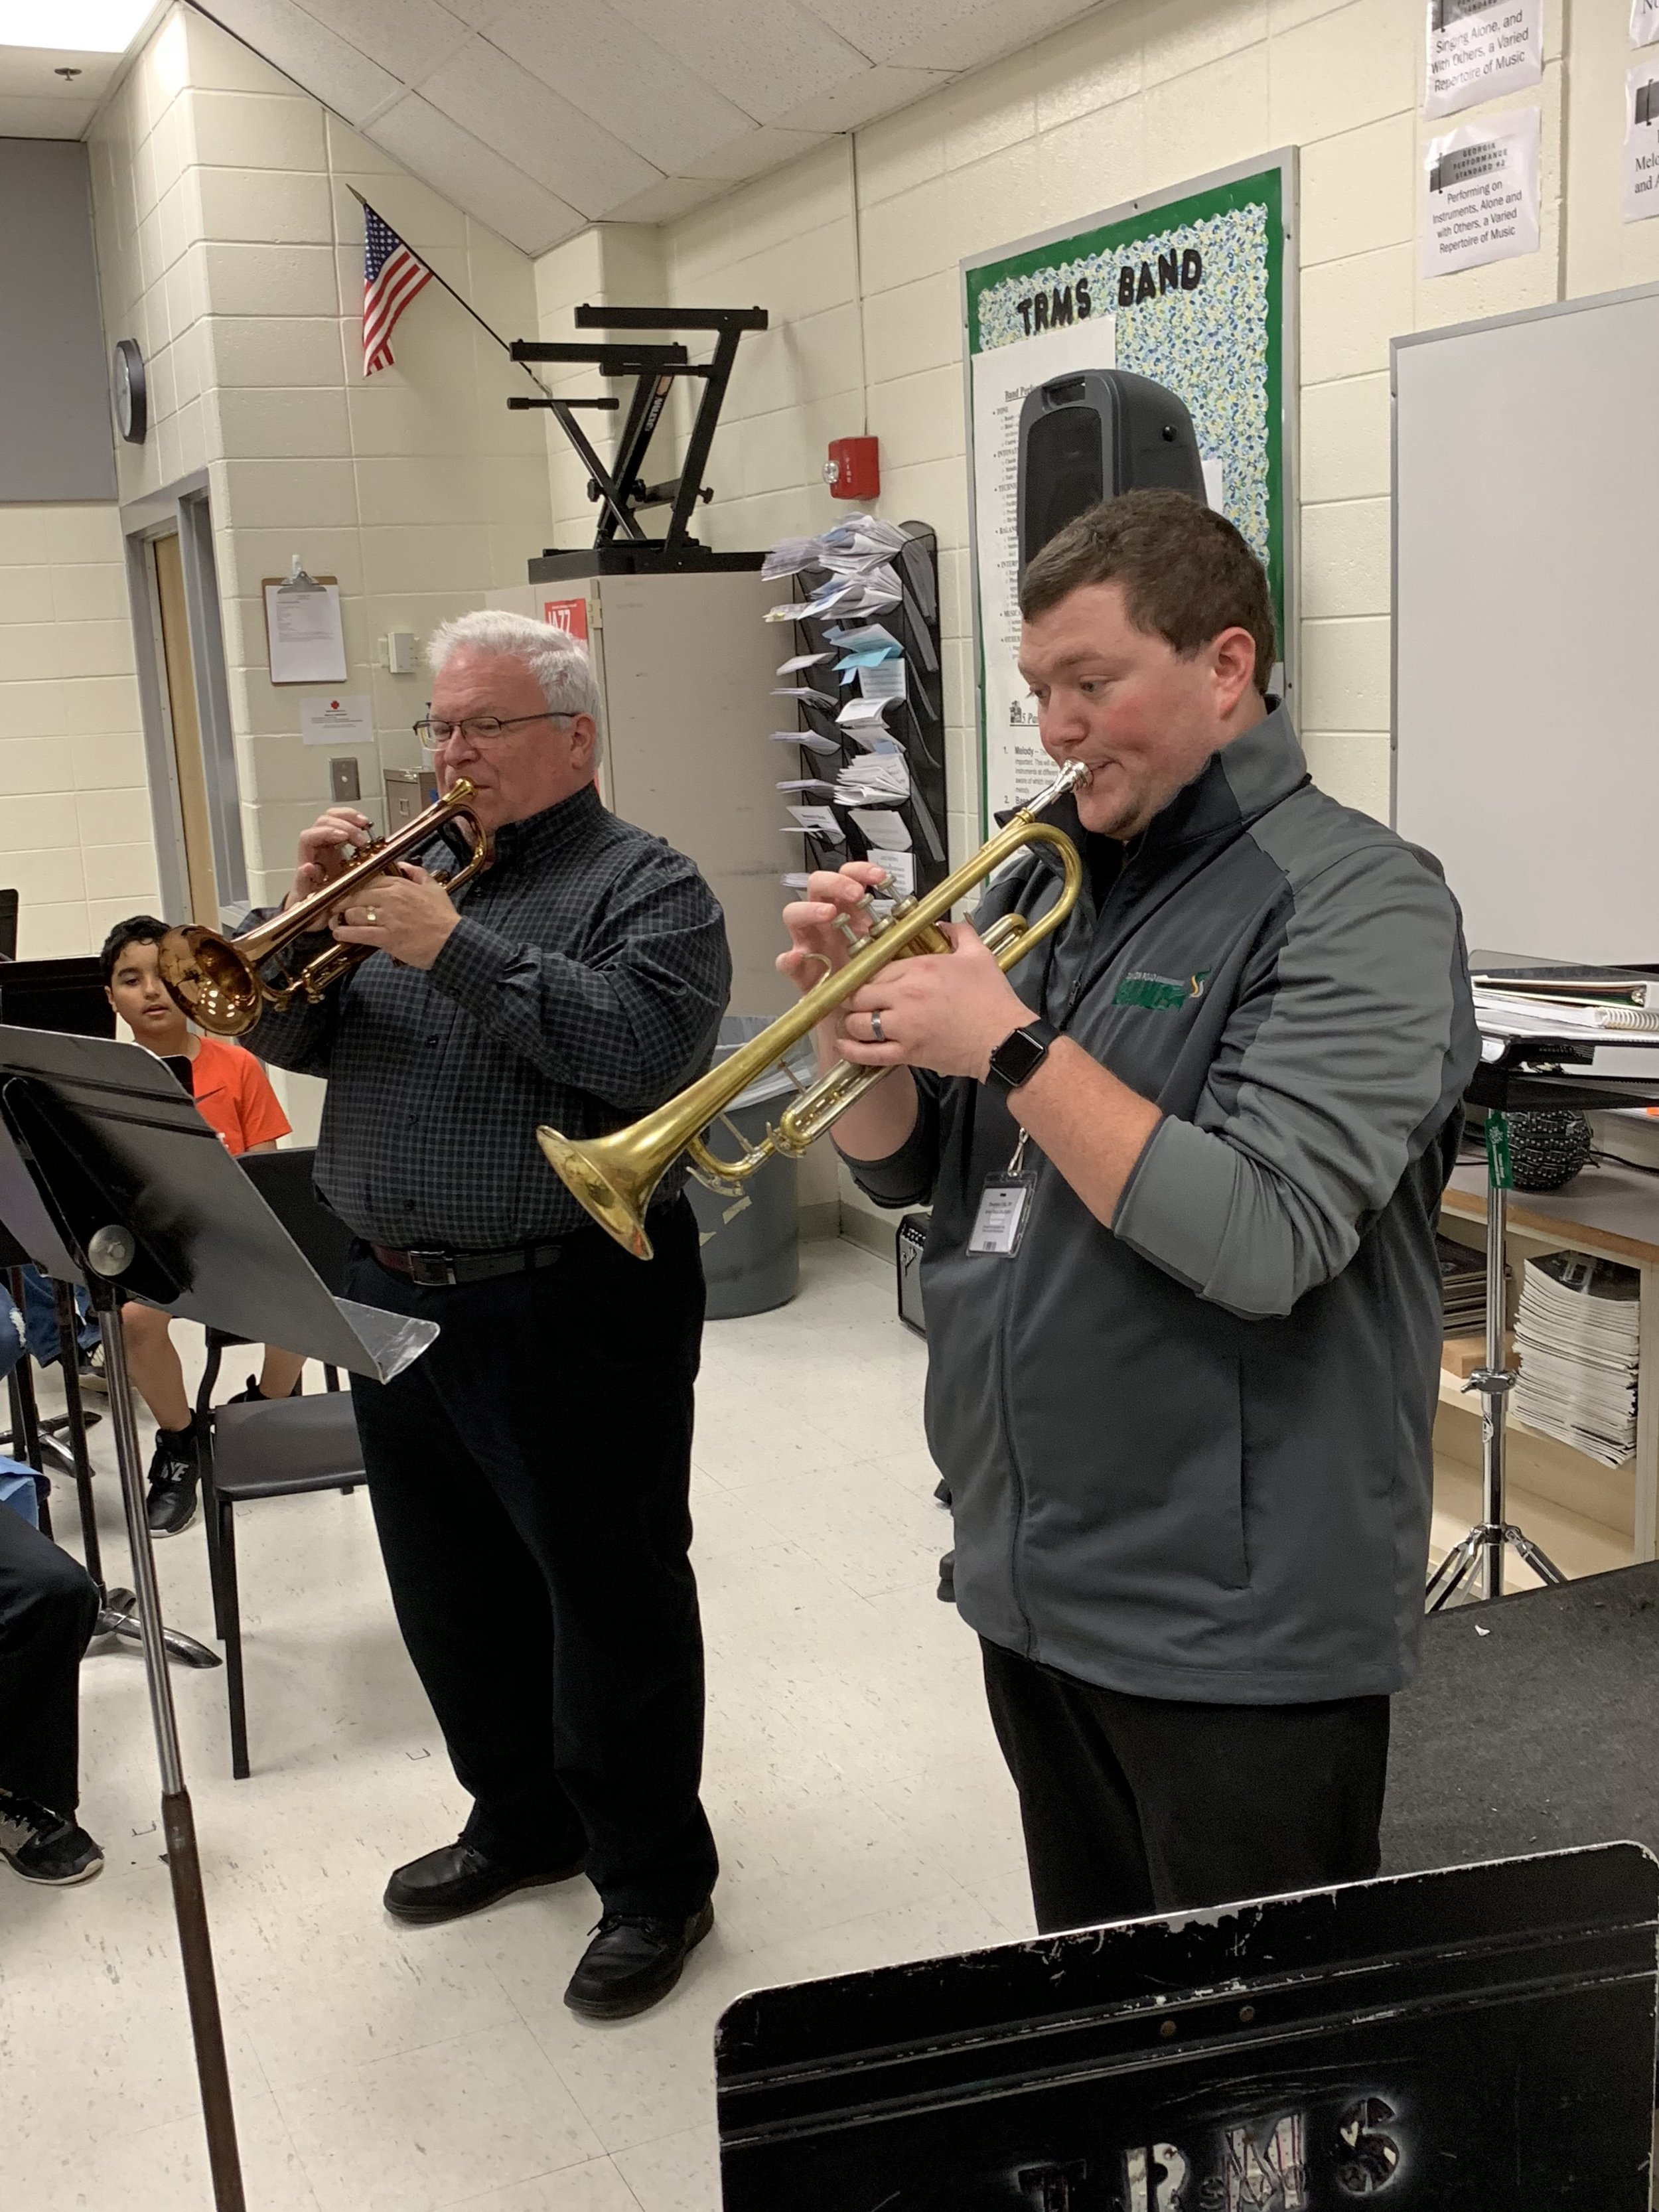 Mr. Soloff and Dr. Murray played some duets and showcased lots of musicality!